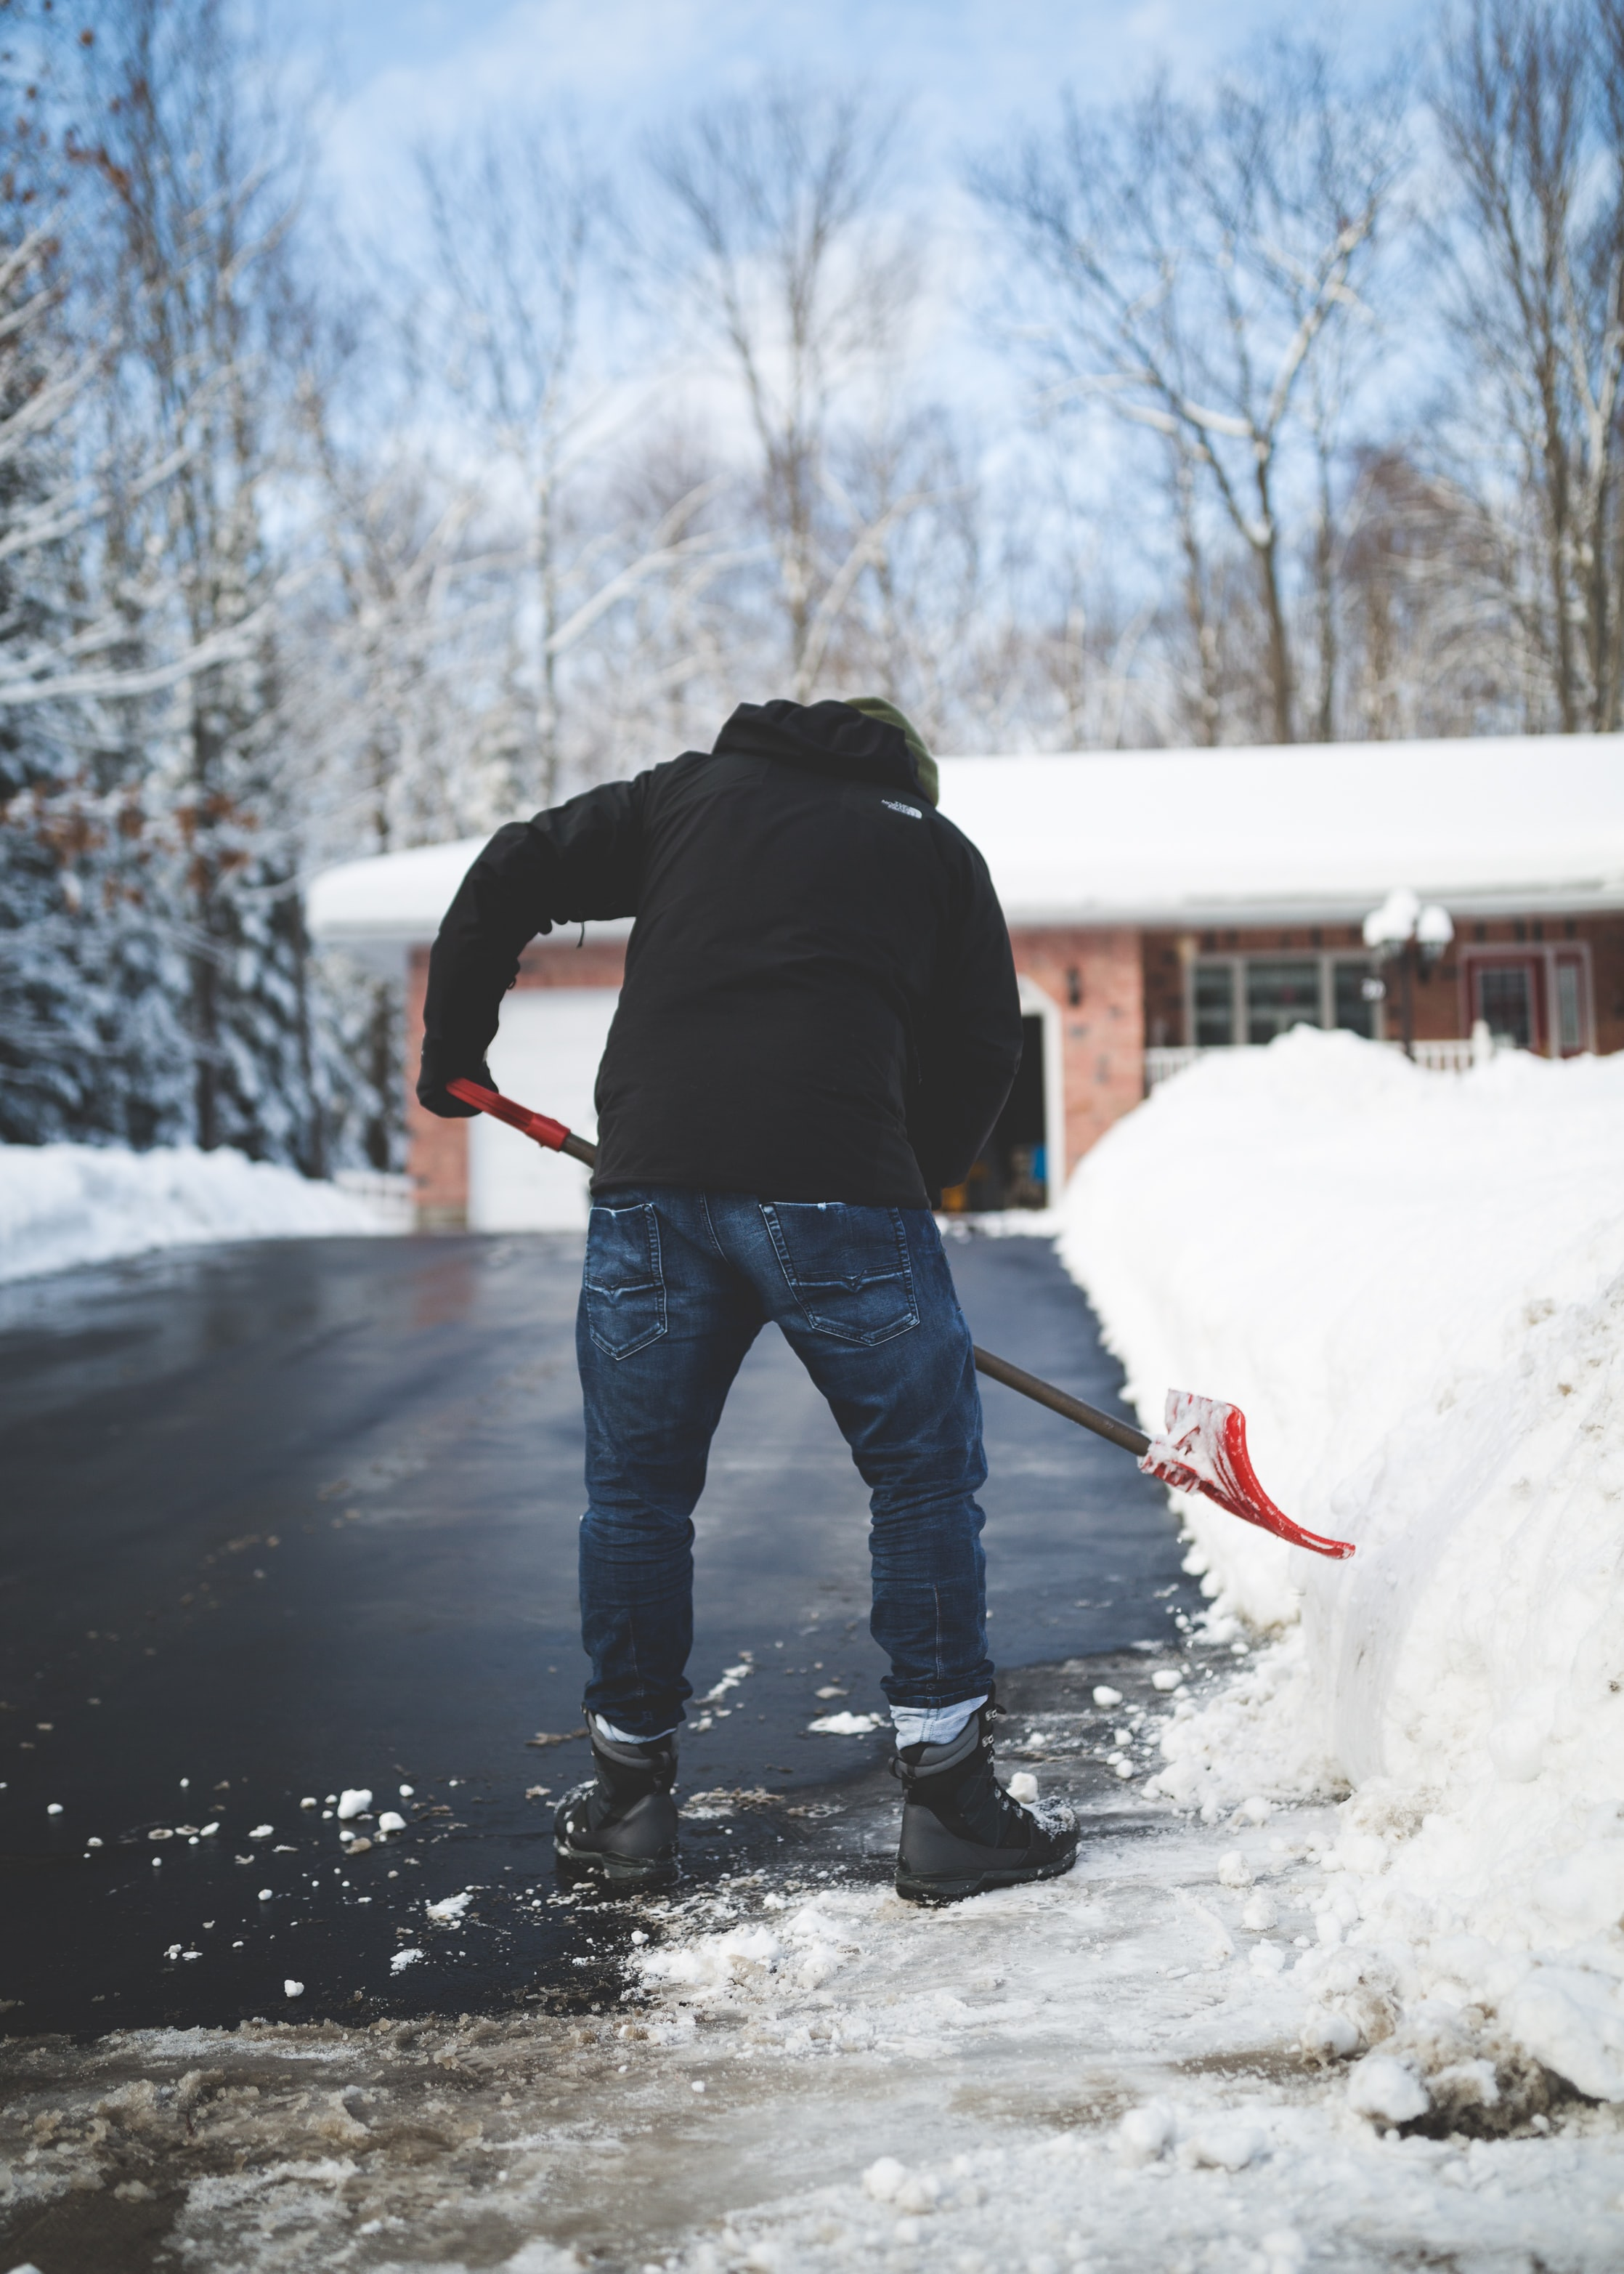 A man shoveling snow off his driveway in Muskoka